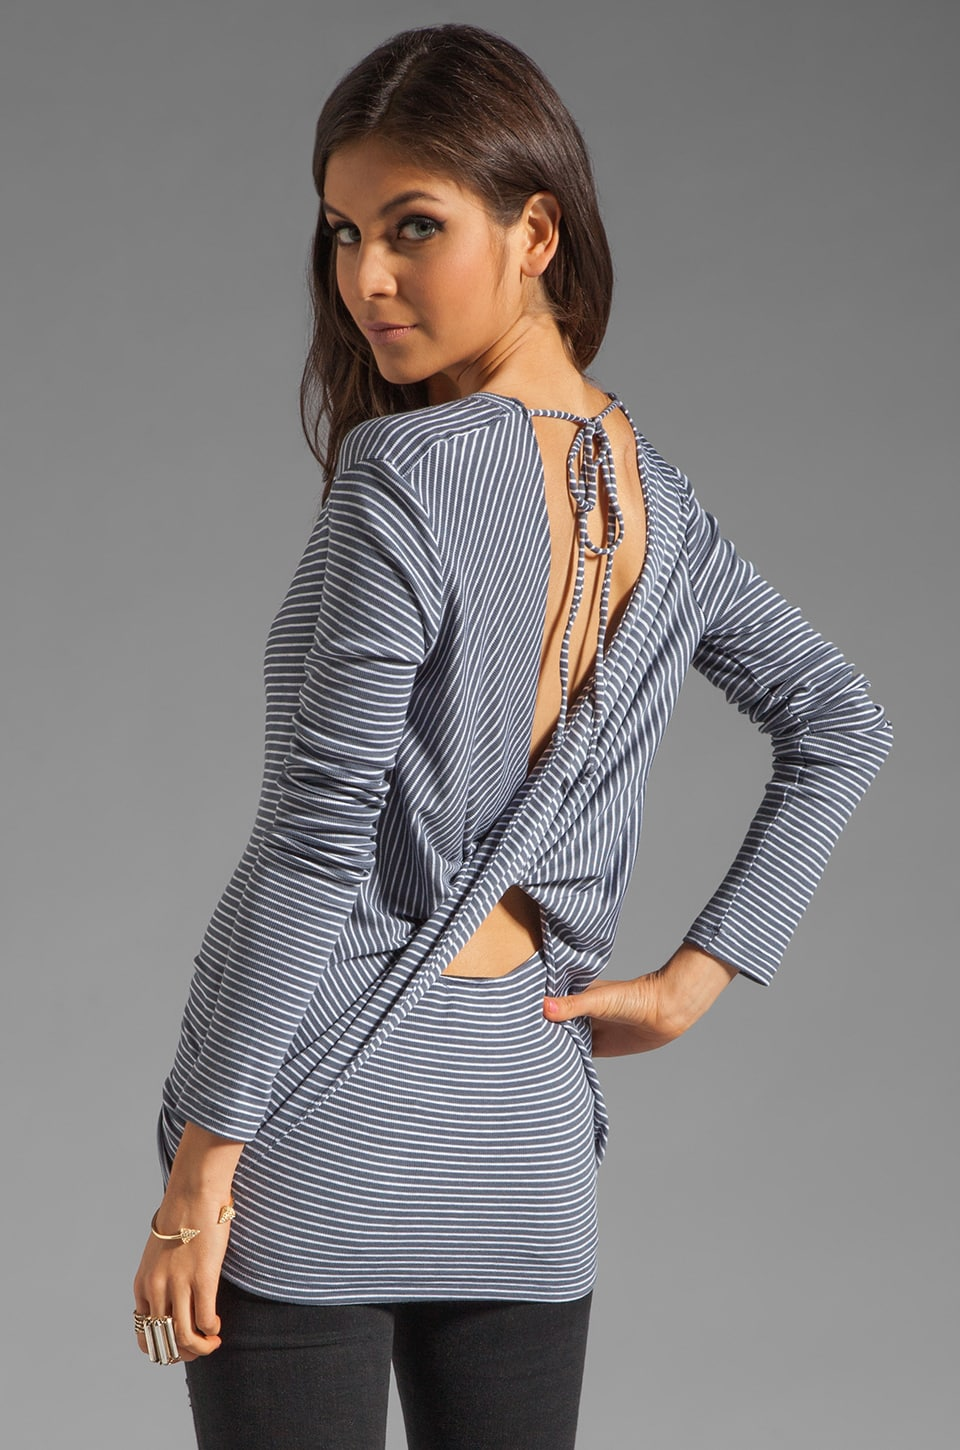 Heather Twist Back Top in Granite Pin Stripe